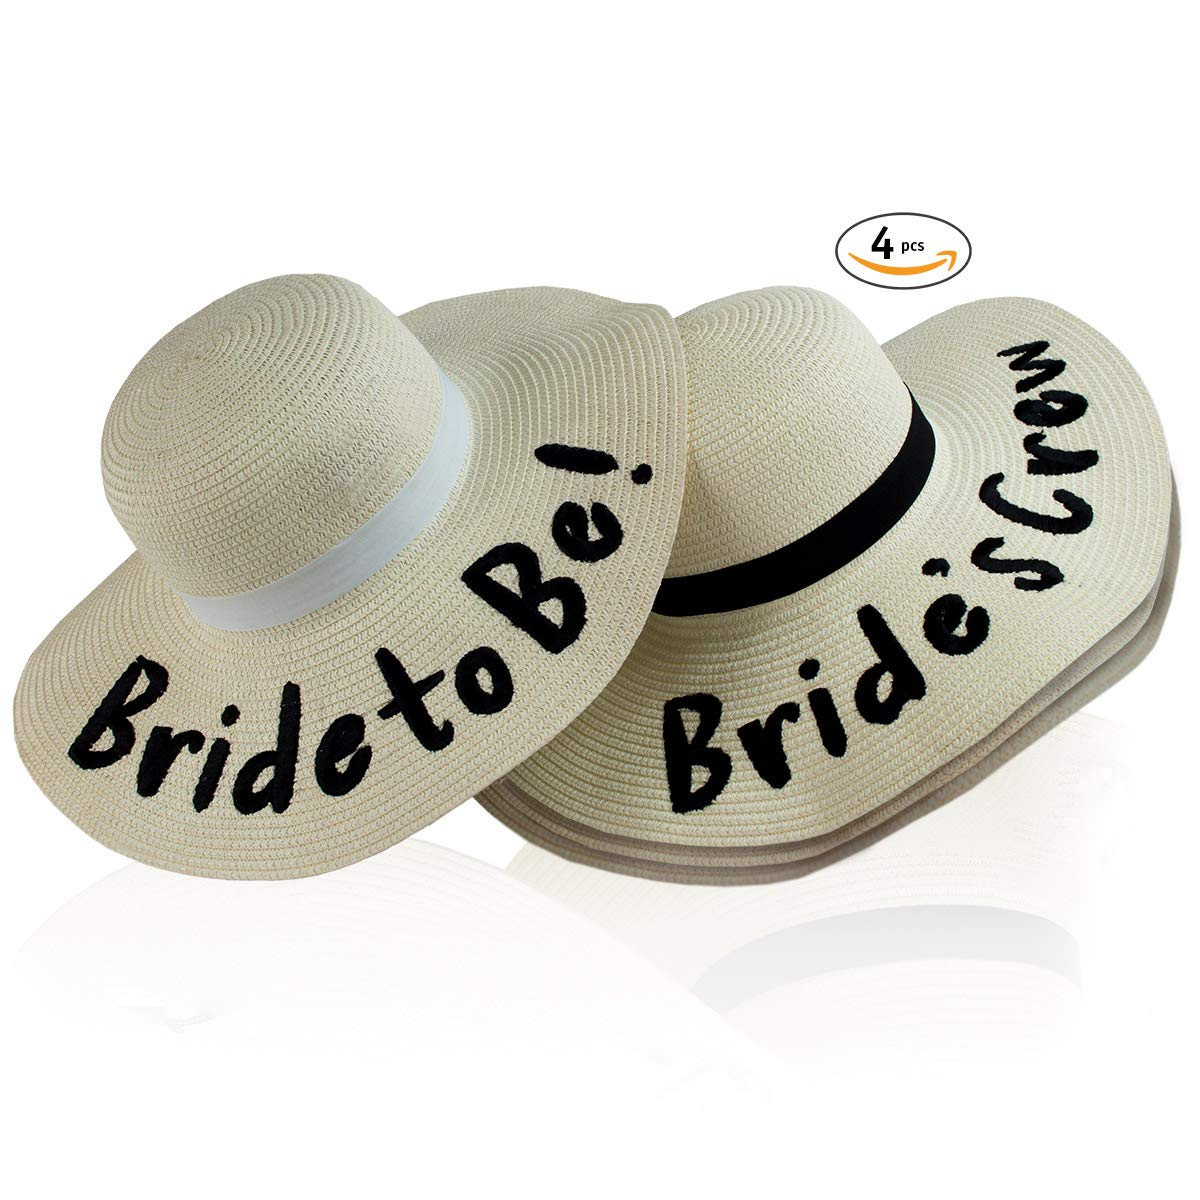 Bridally Bachelorette Party Hats, Sun Beach Wedding Trip Celebration Favors Decoration, Bride to Be! White Hat with Ribbon + 3 Bride's Crew in Black